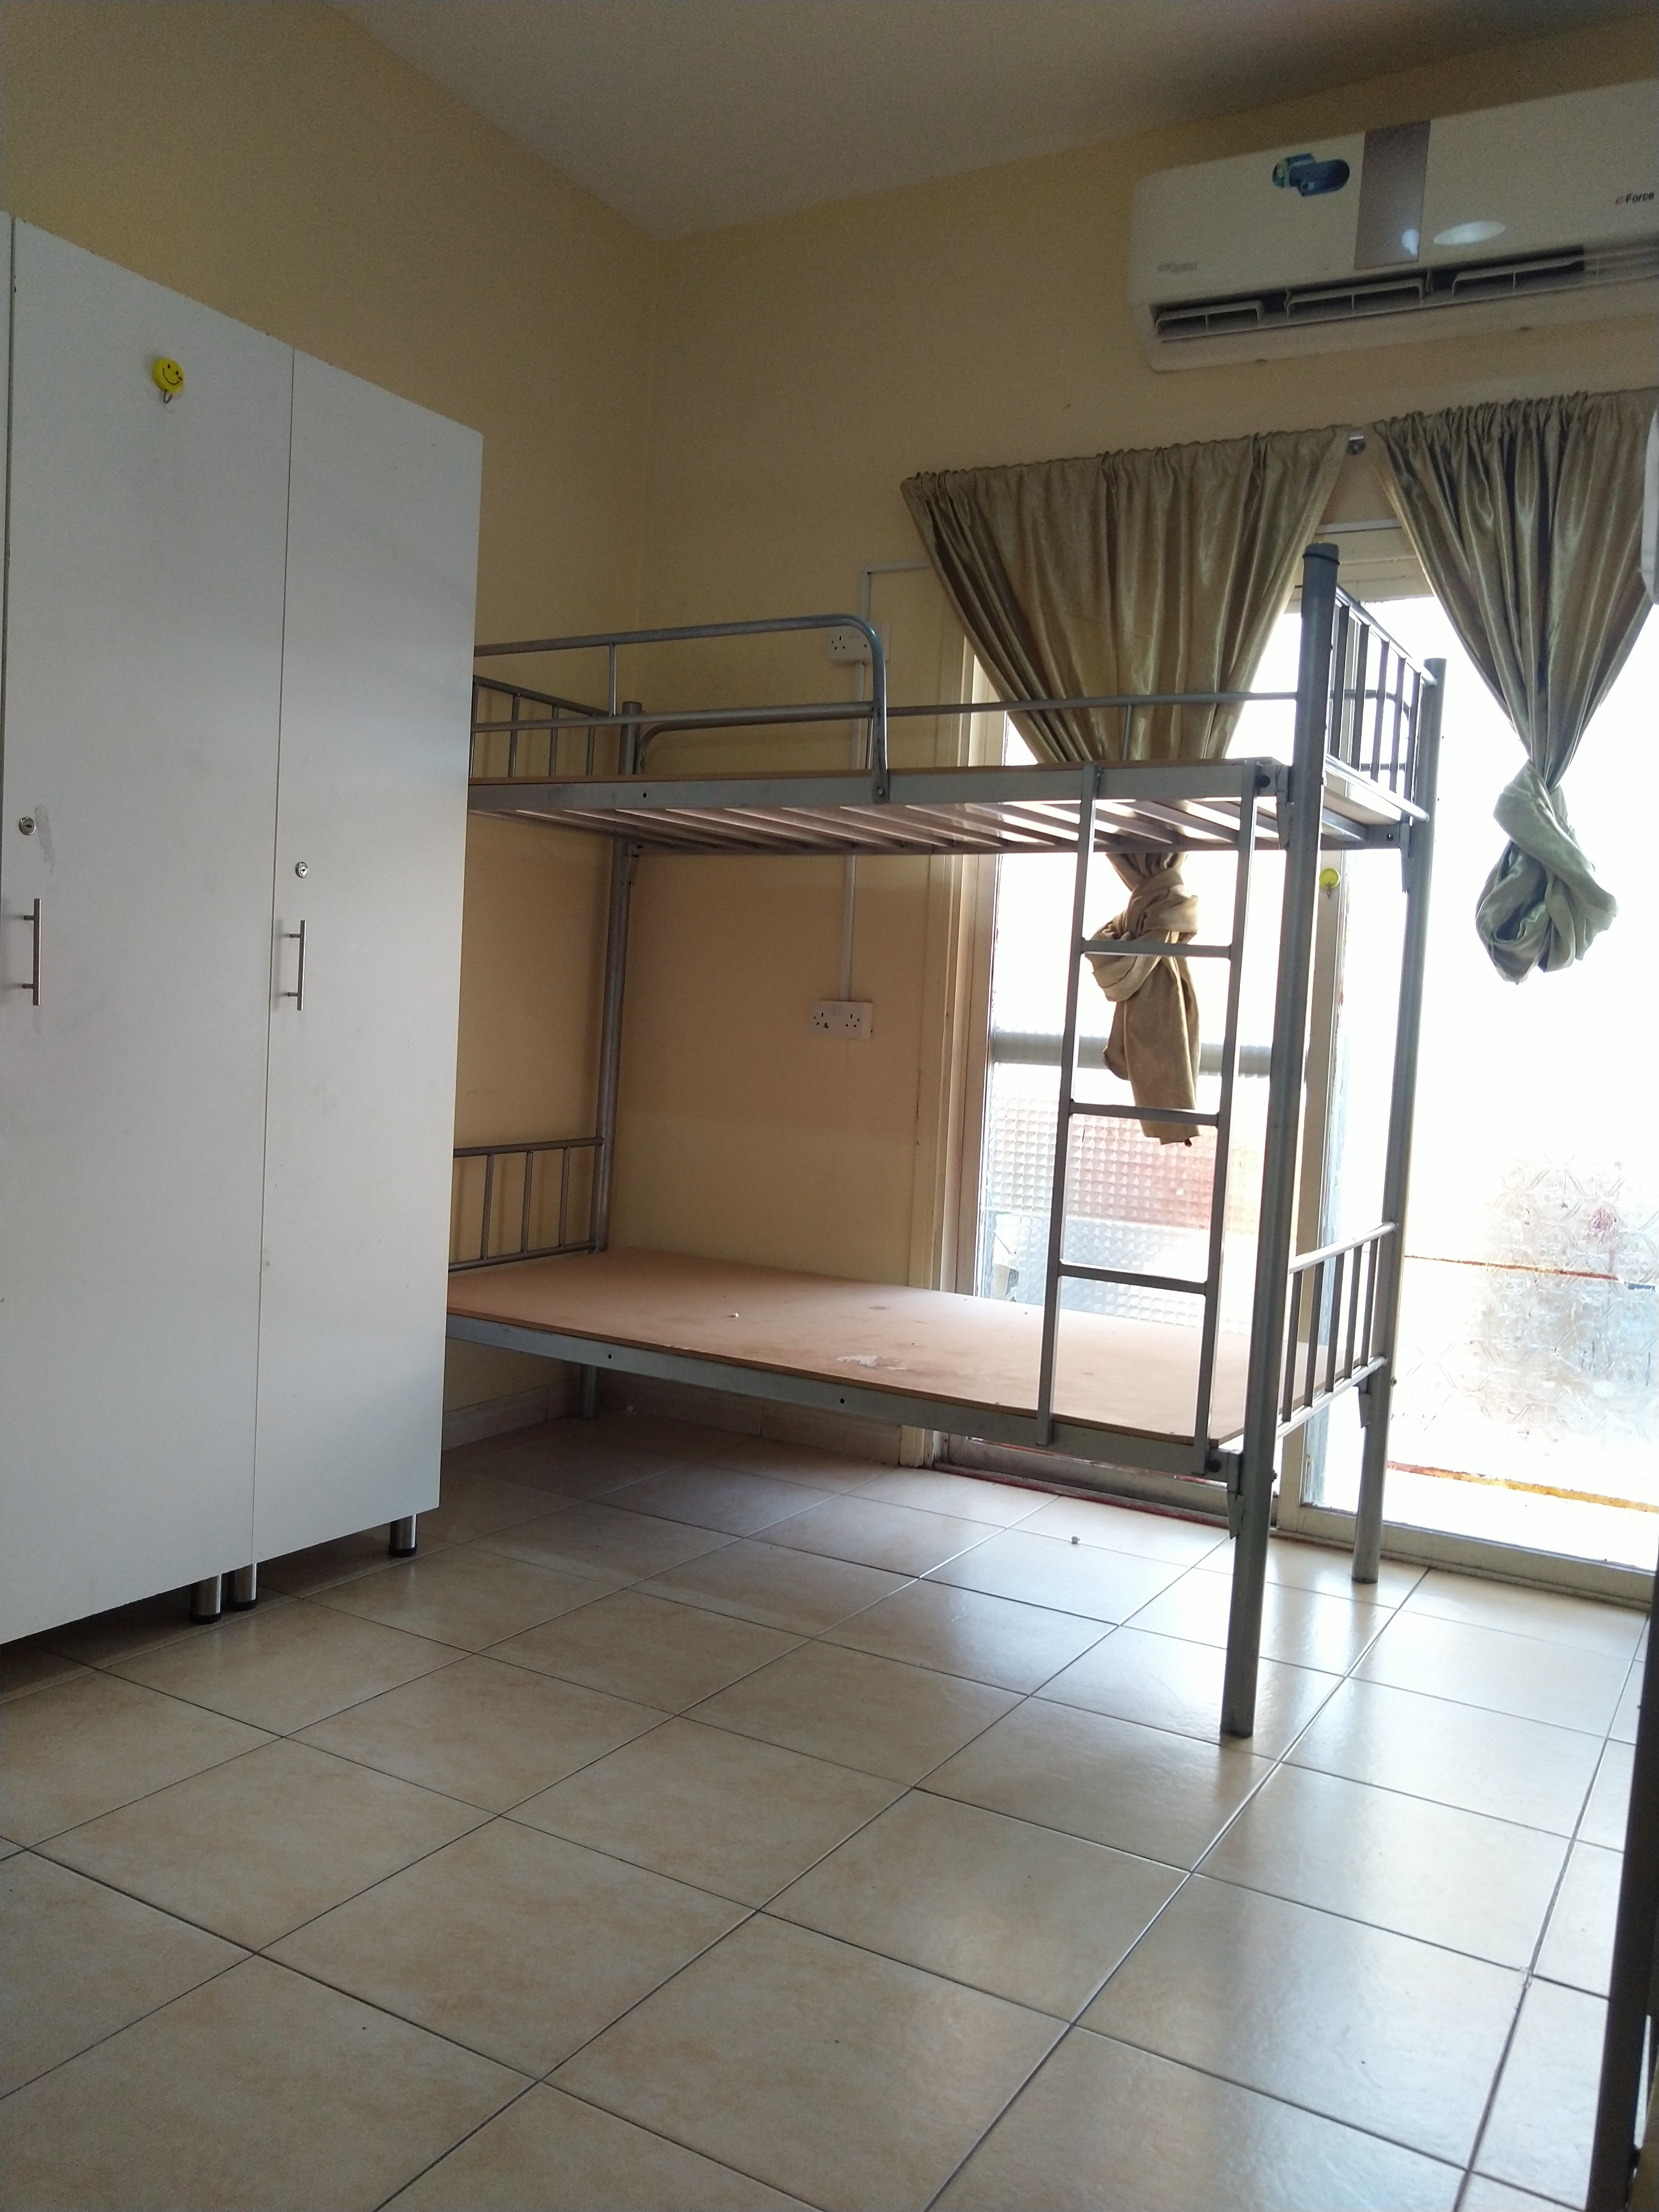 AVAILABLE LADIES BED SPACE/ROOM FOR INDIANS